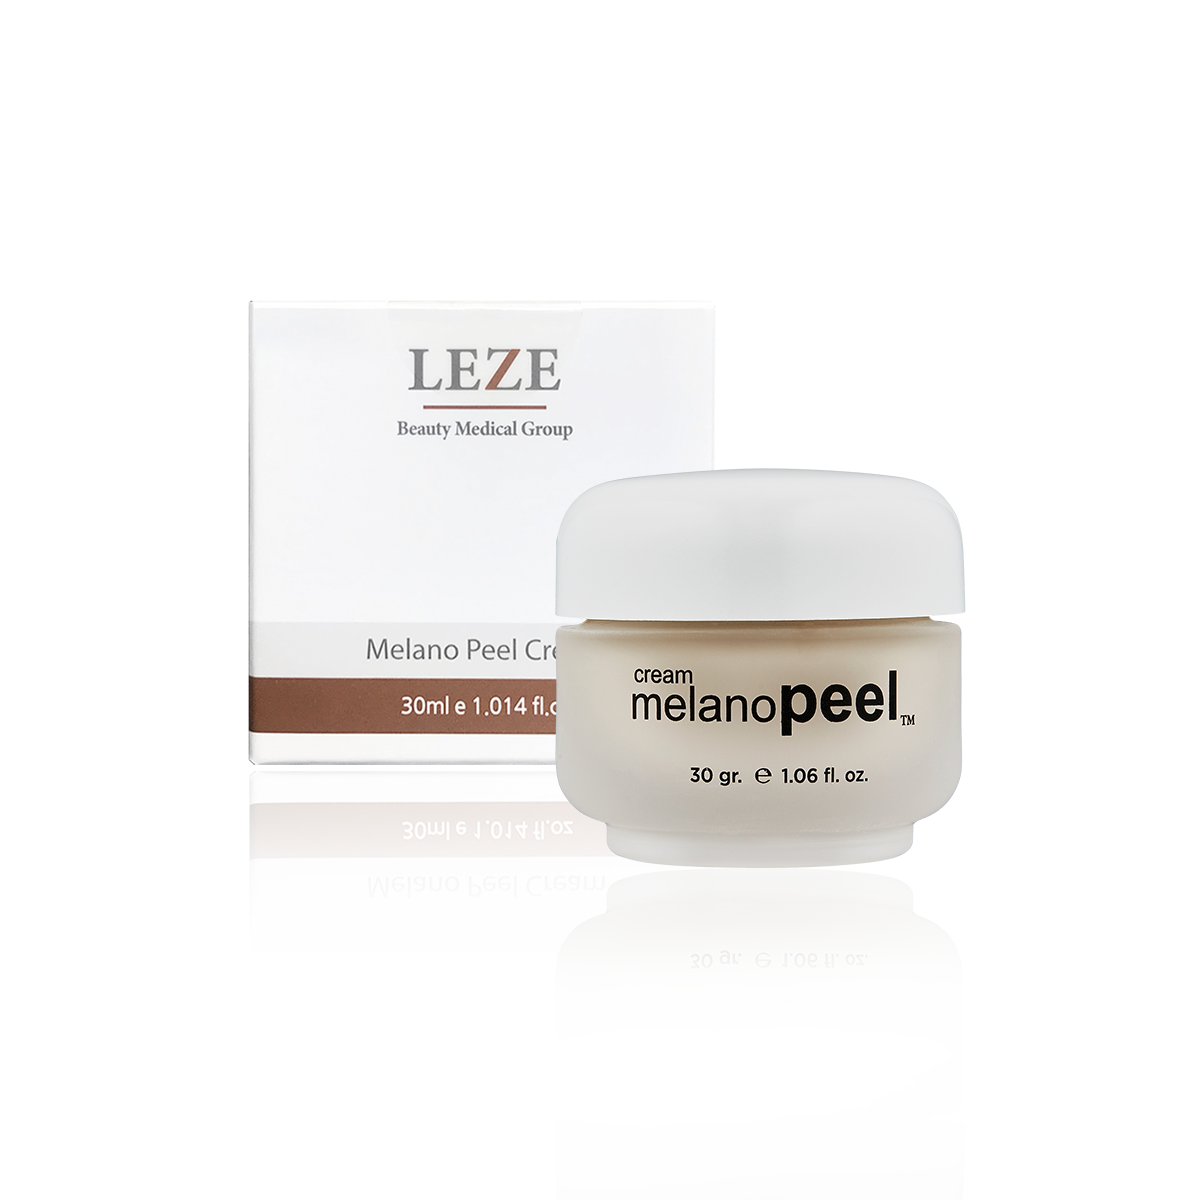 Melanopeel Cream